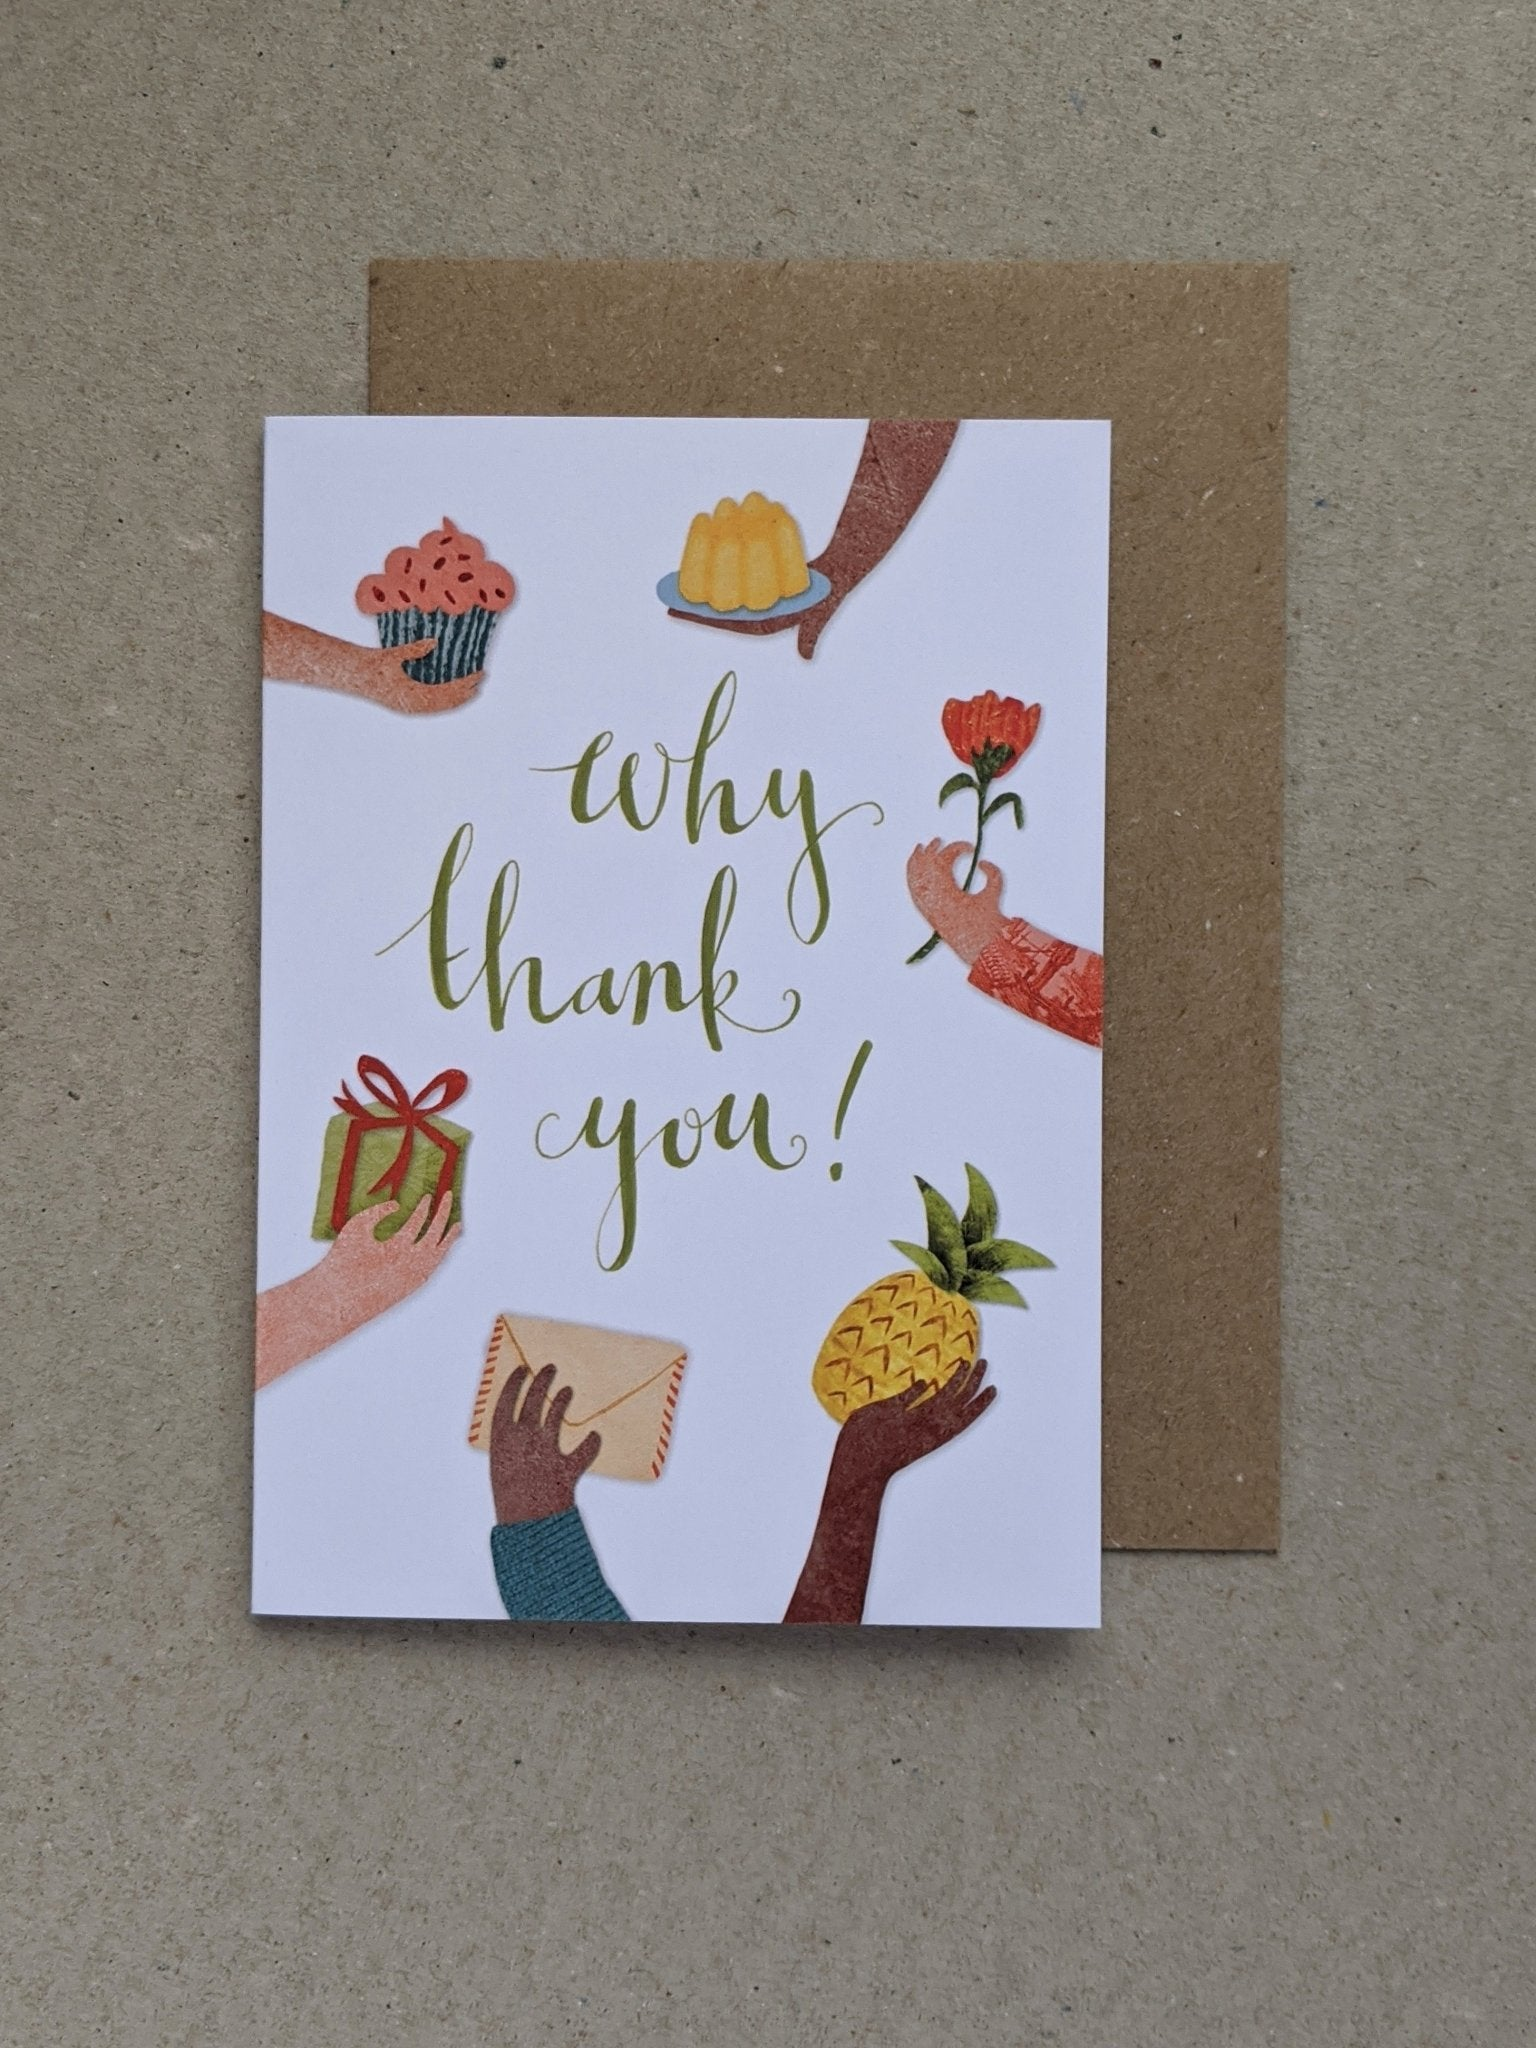 Thank You greetings card - The Stationery Cupboard